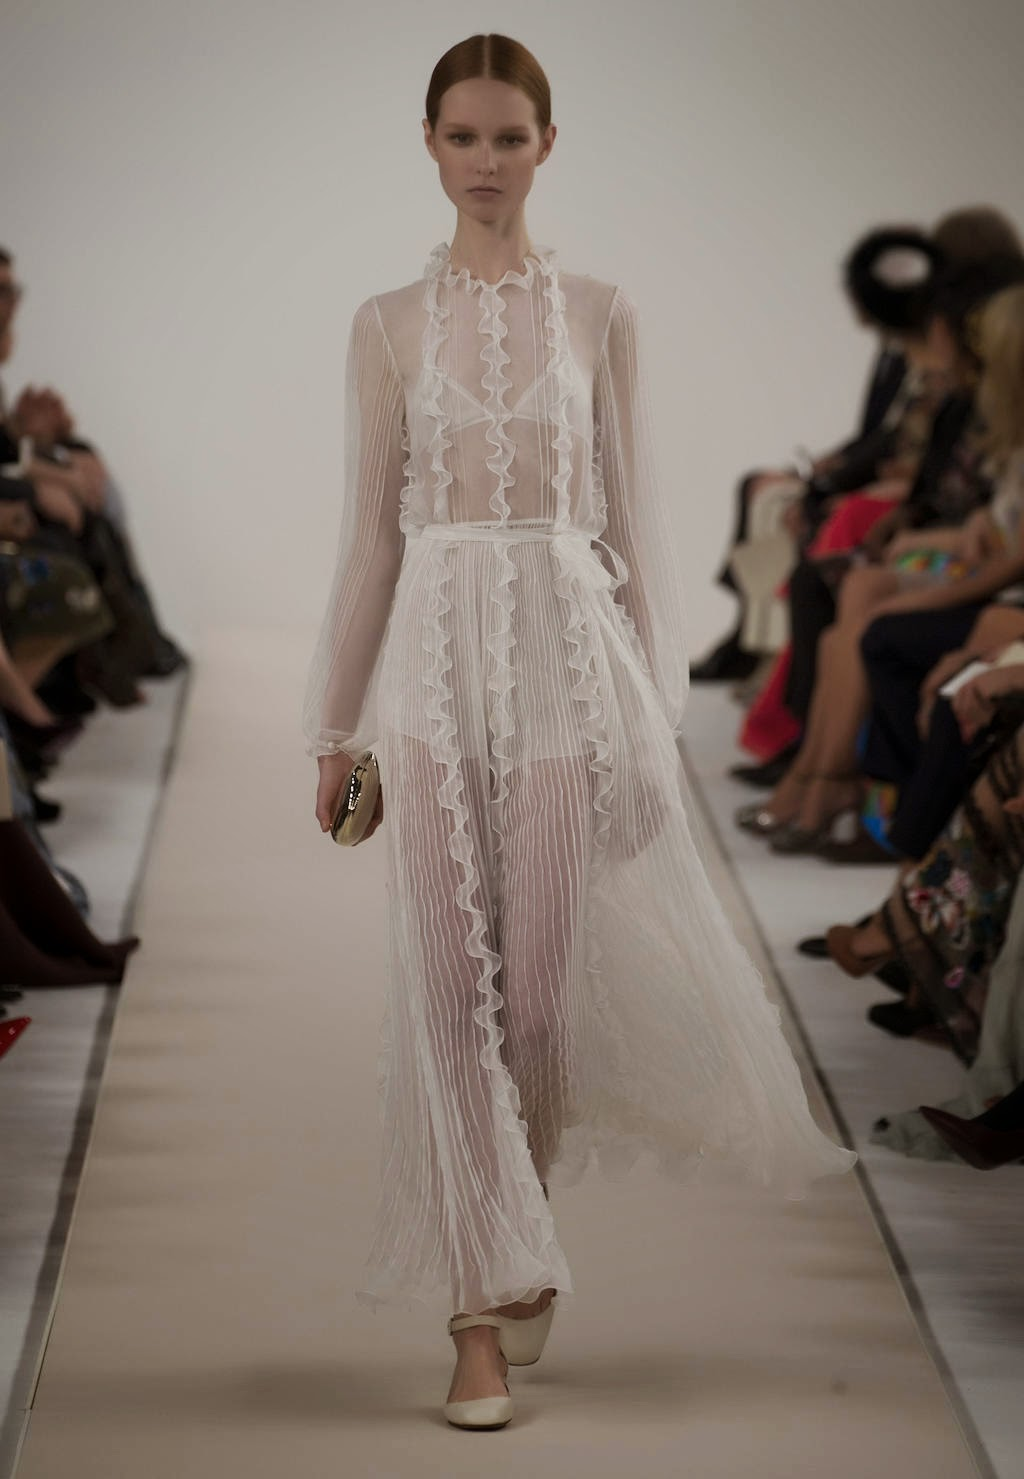 Lace Drees - The Runway at Valentino's New York Couture Show